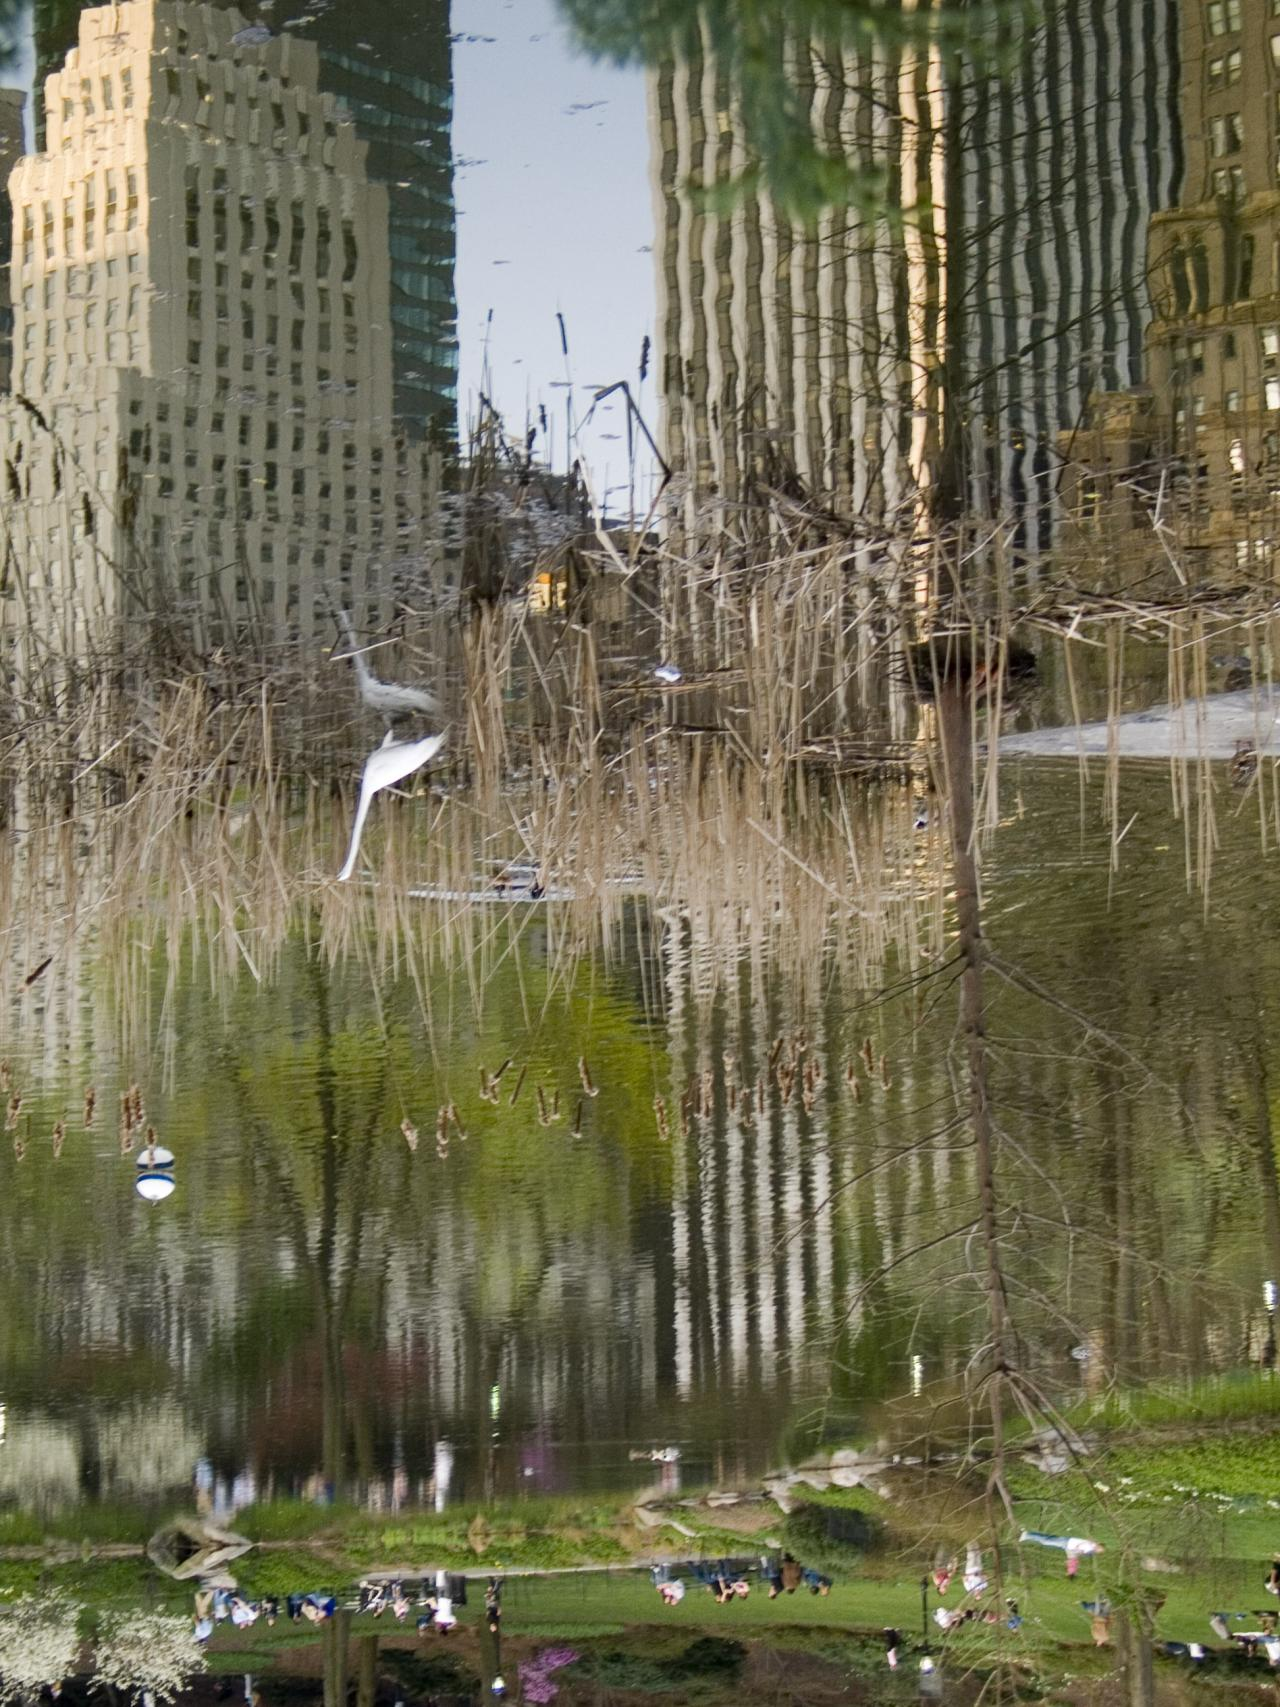 Central Park - Reflection, 2006, digital photograph by Orin Buck.